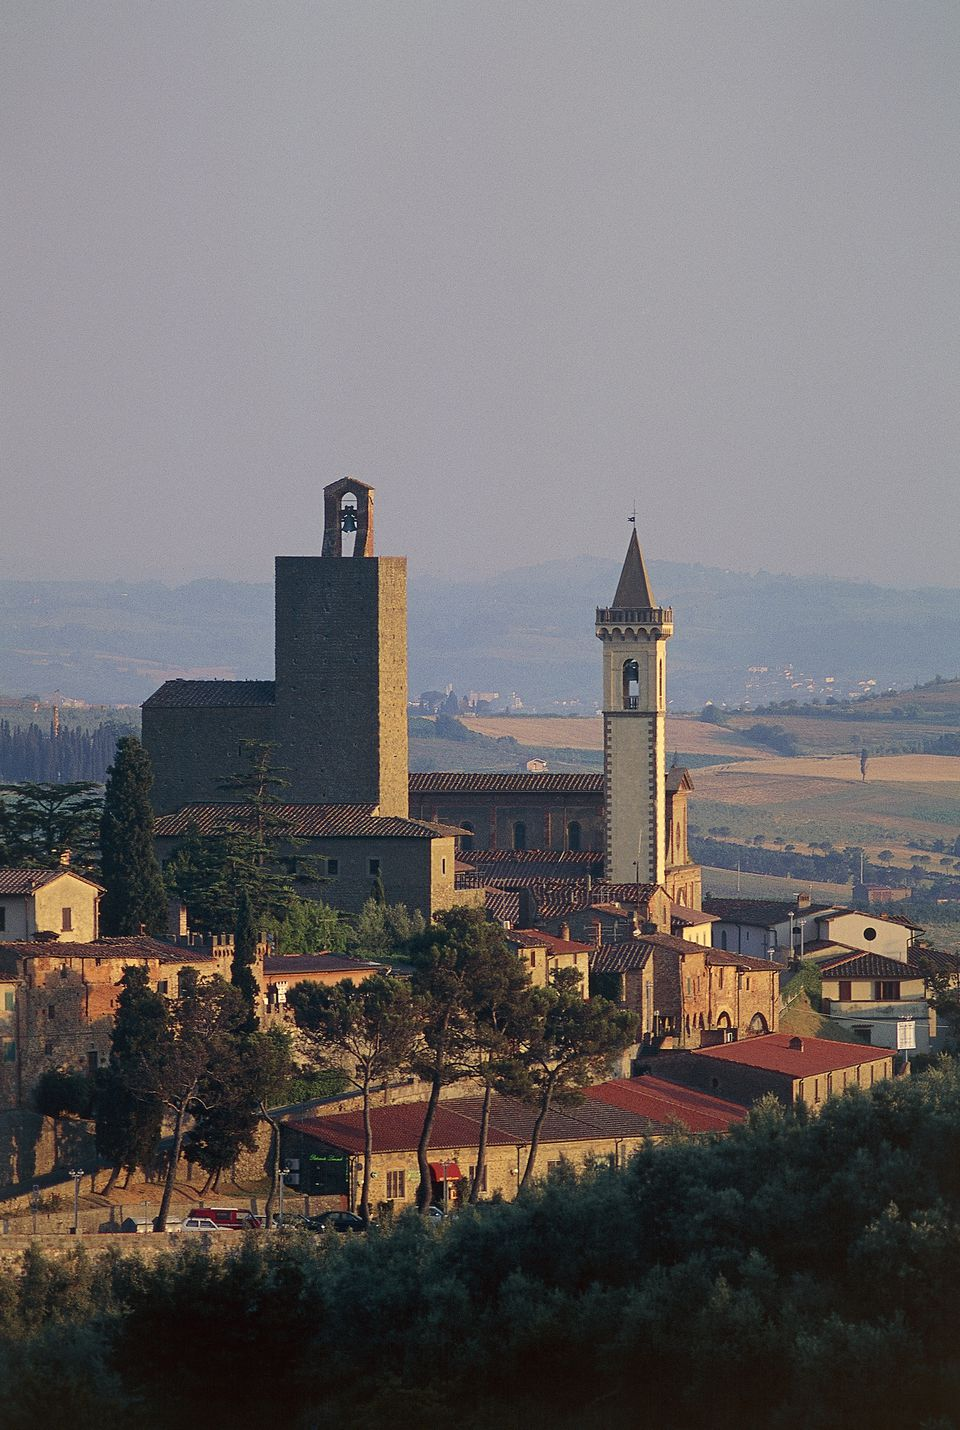 View of Vinci, Italy